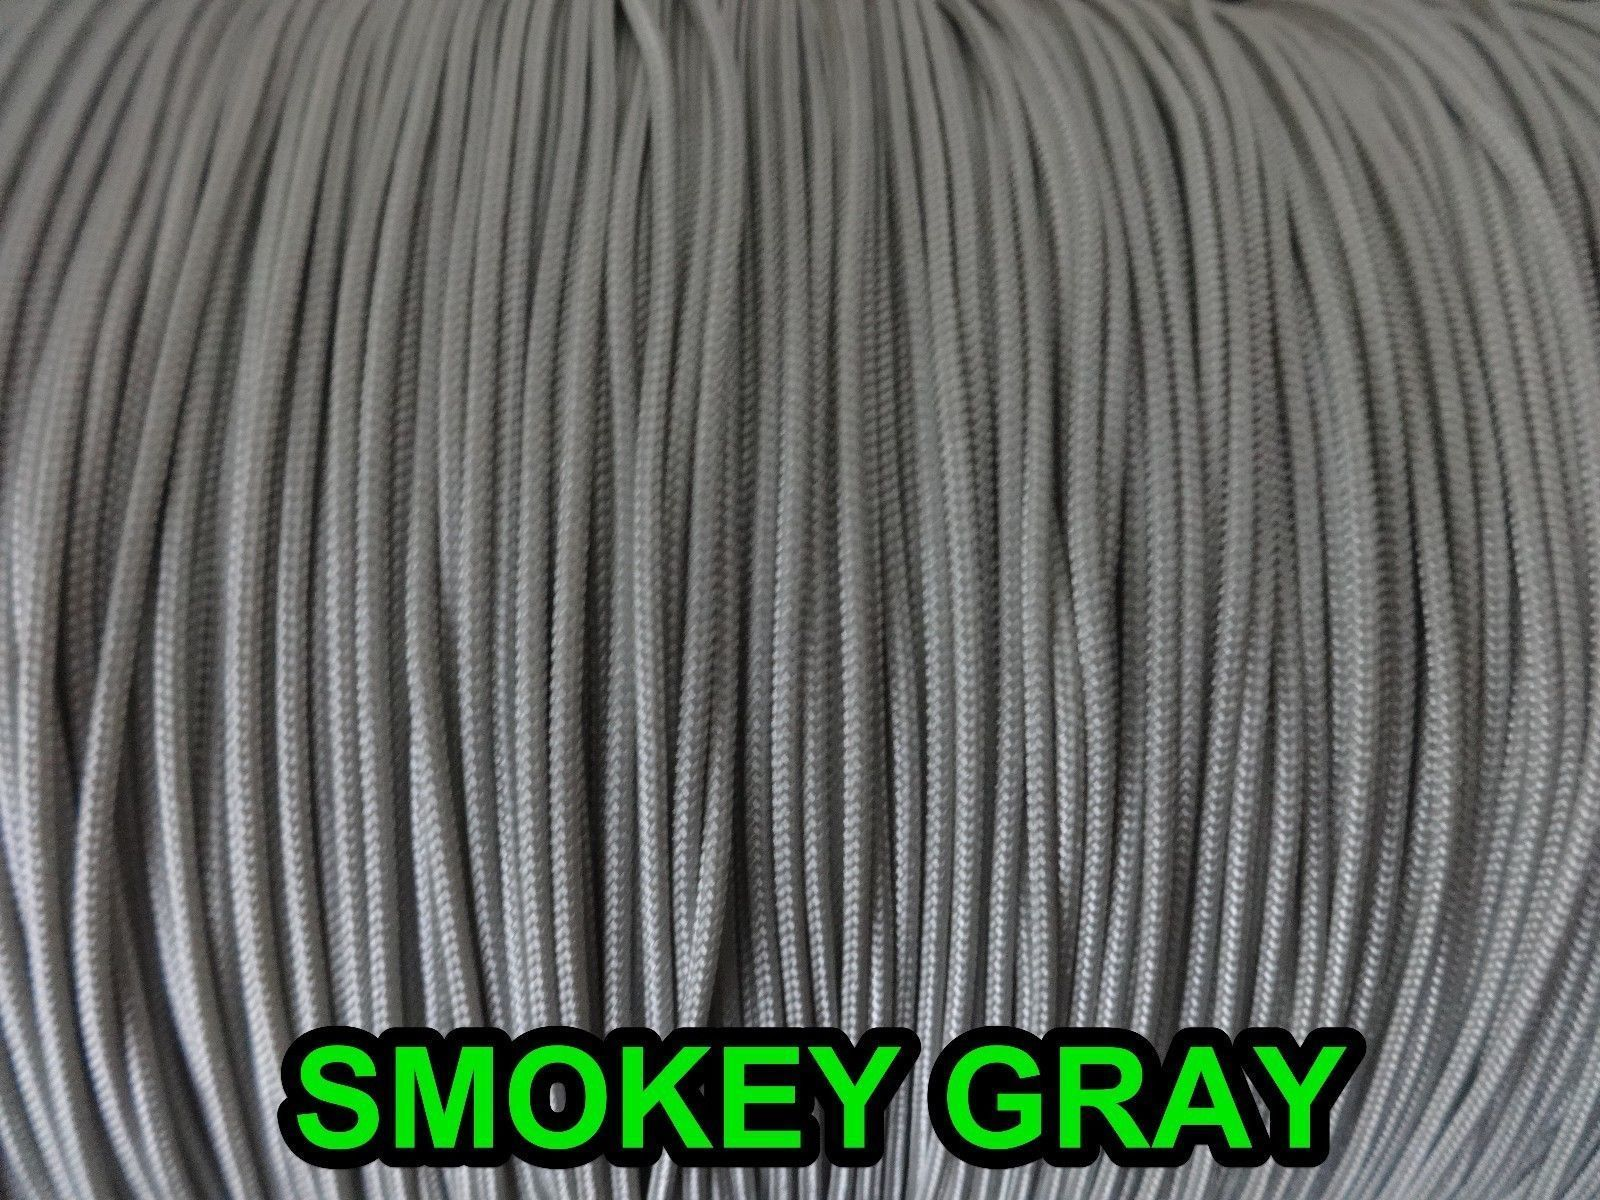 20 FEET: 1.4mm SMOKEY GRAY LIFT CORD: ROMAN /PLEATED shade & HORIZONTAL blind